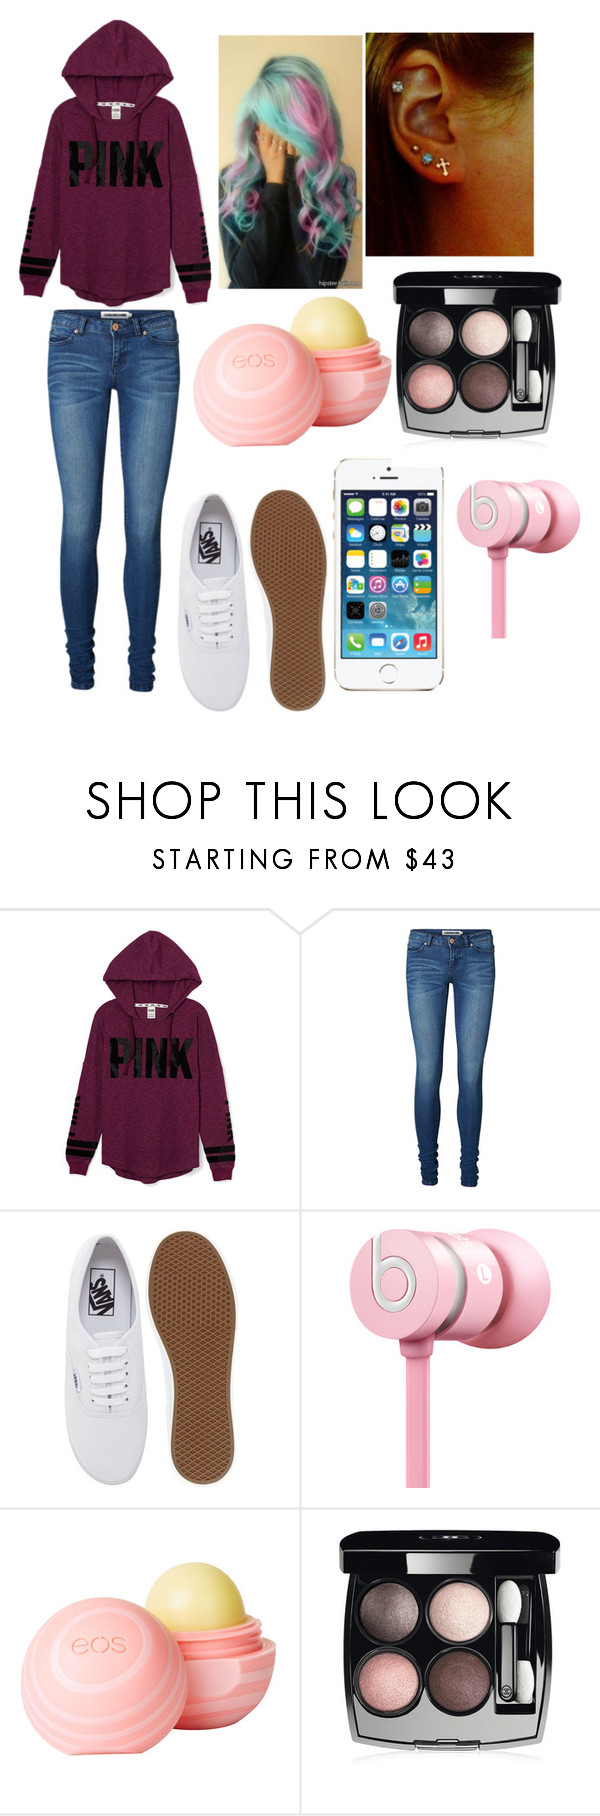 """""""Midnight walk"""" by imaray98 ❤ liked on Polyvore featuring Victoria's Secret PINK, Vero Moda, Vans, Beats by Dr. Dre, dELiA*s and Chanel"""